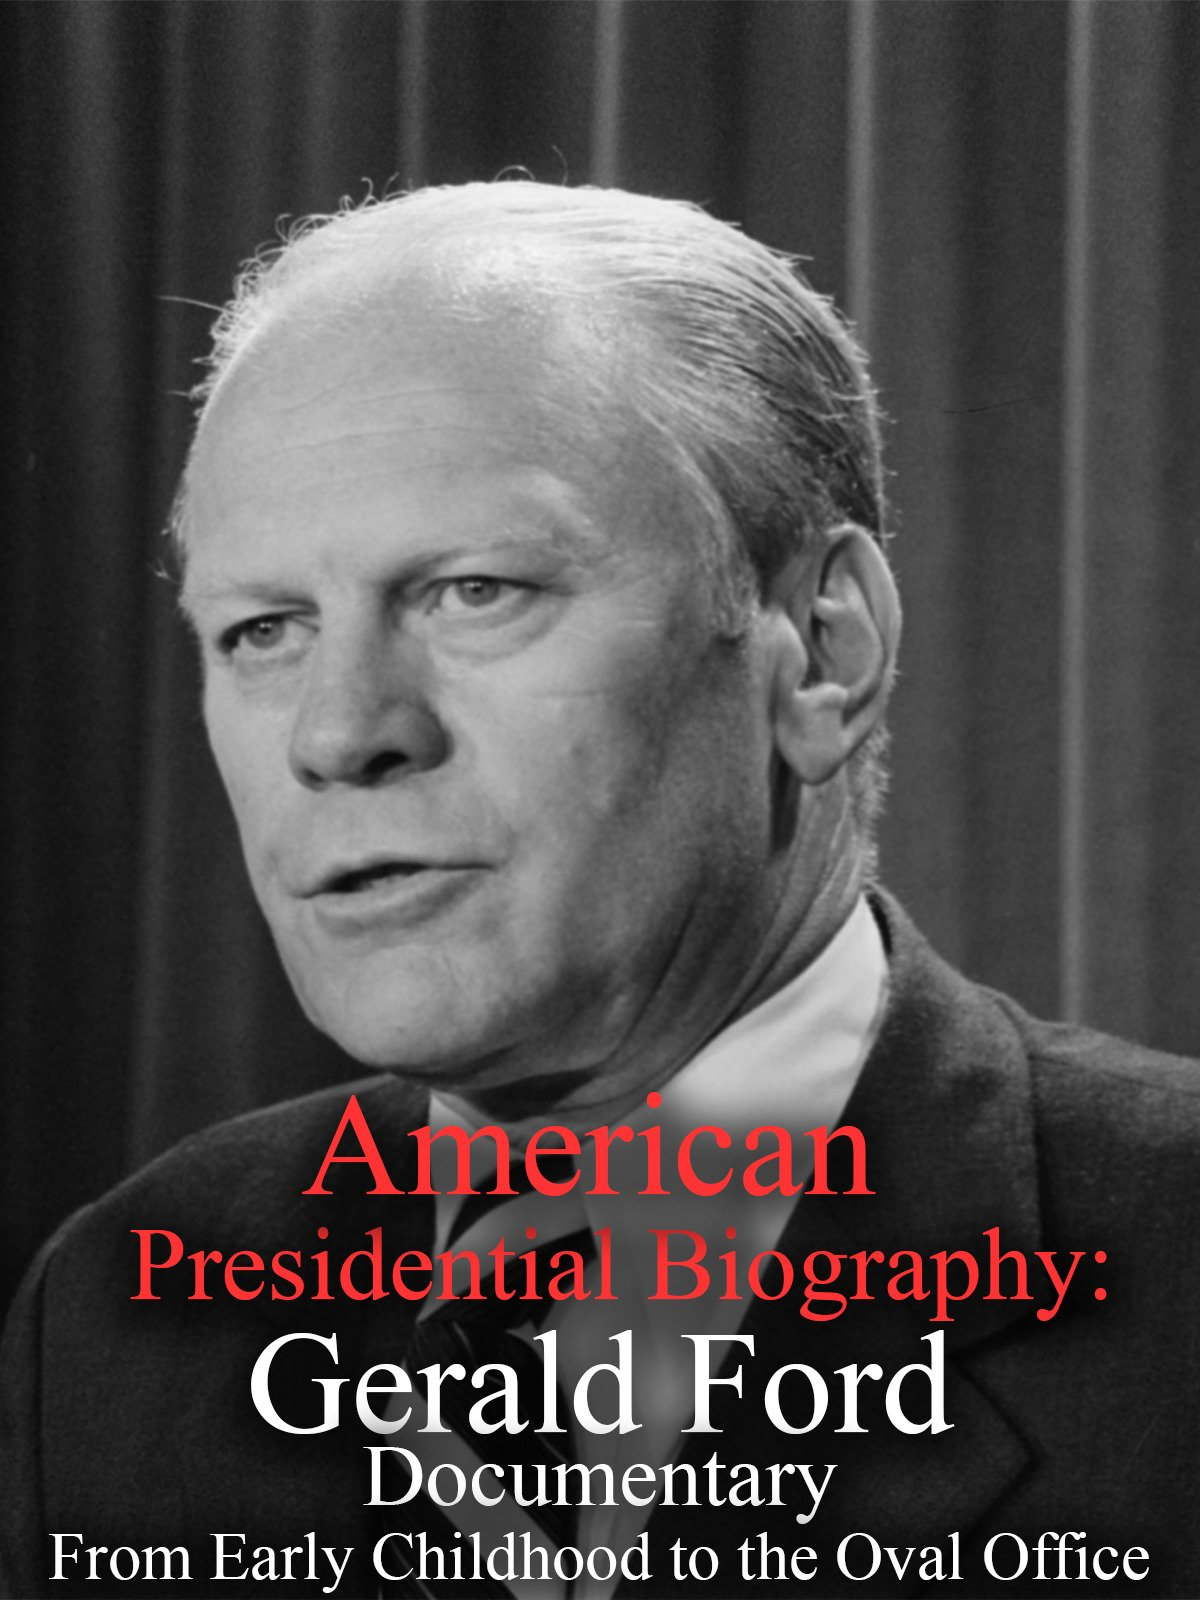 American Presidential Biography: Gerald Ford Documentary From Early Childhood to After Office